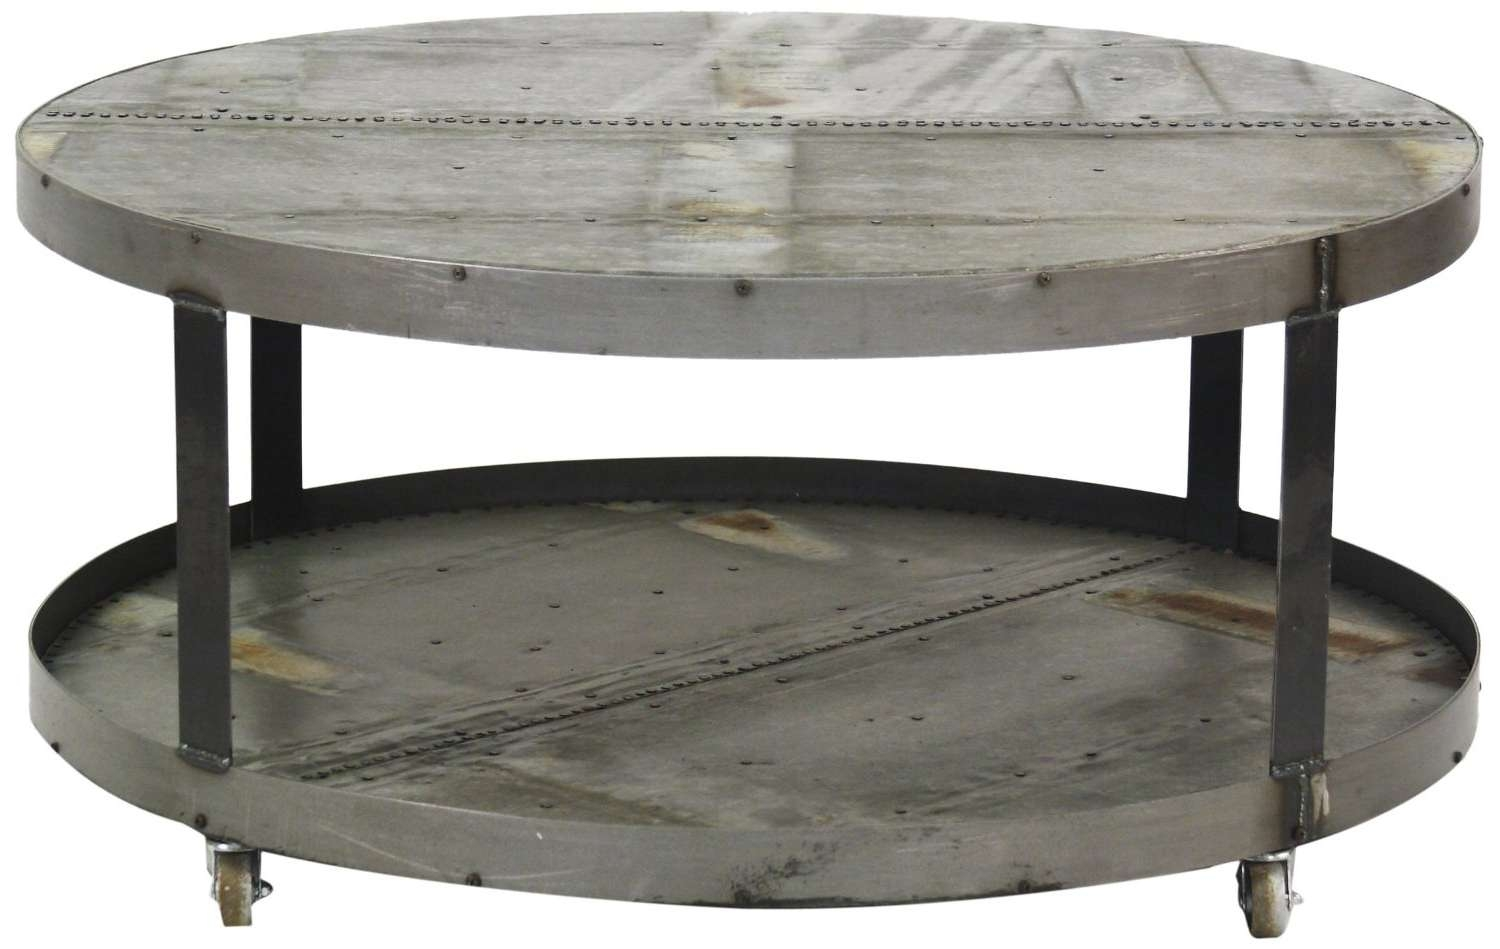 Metal Round Coffee Table Base Only Portable Round Metal Coffee Pertaining To Best And Newest Metal Round Coffee Tables (View 11 of 20)